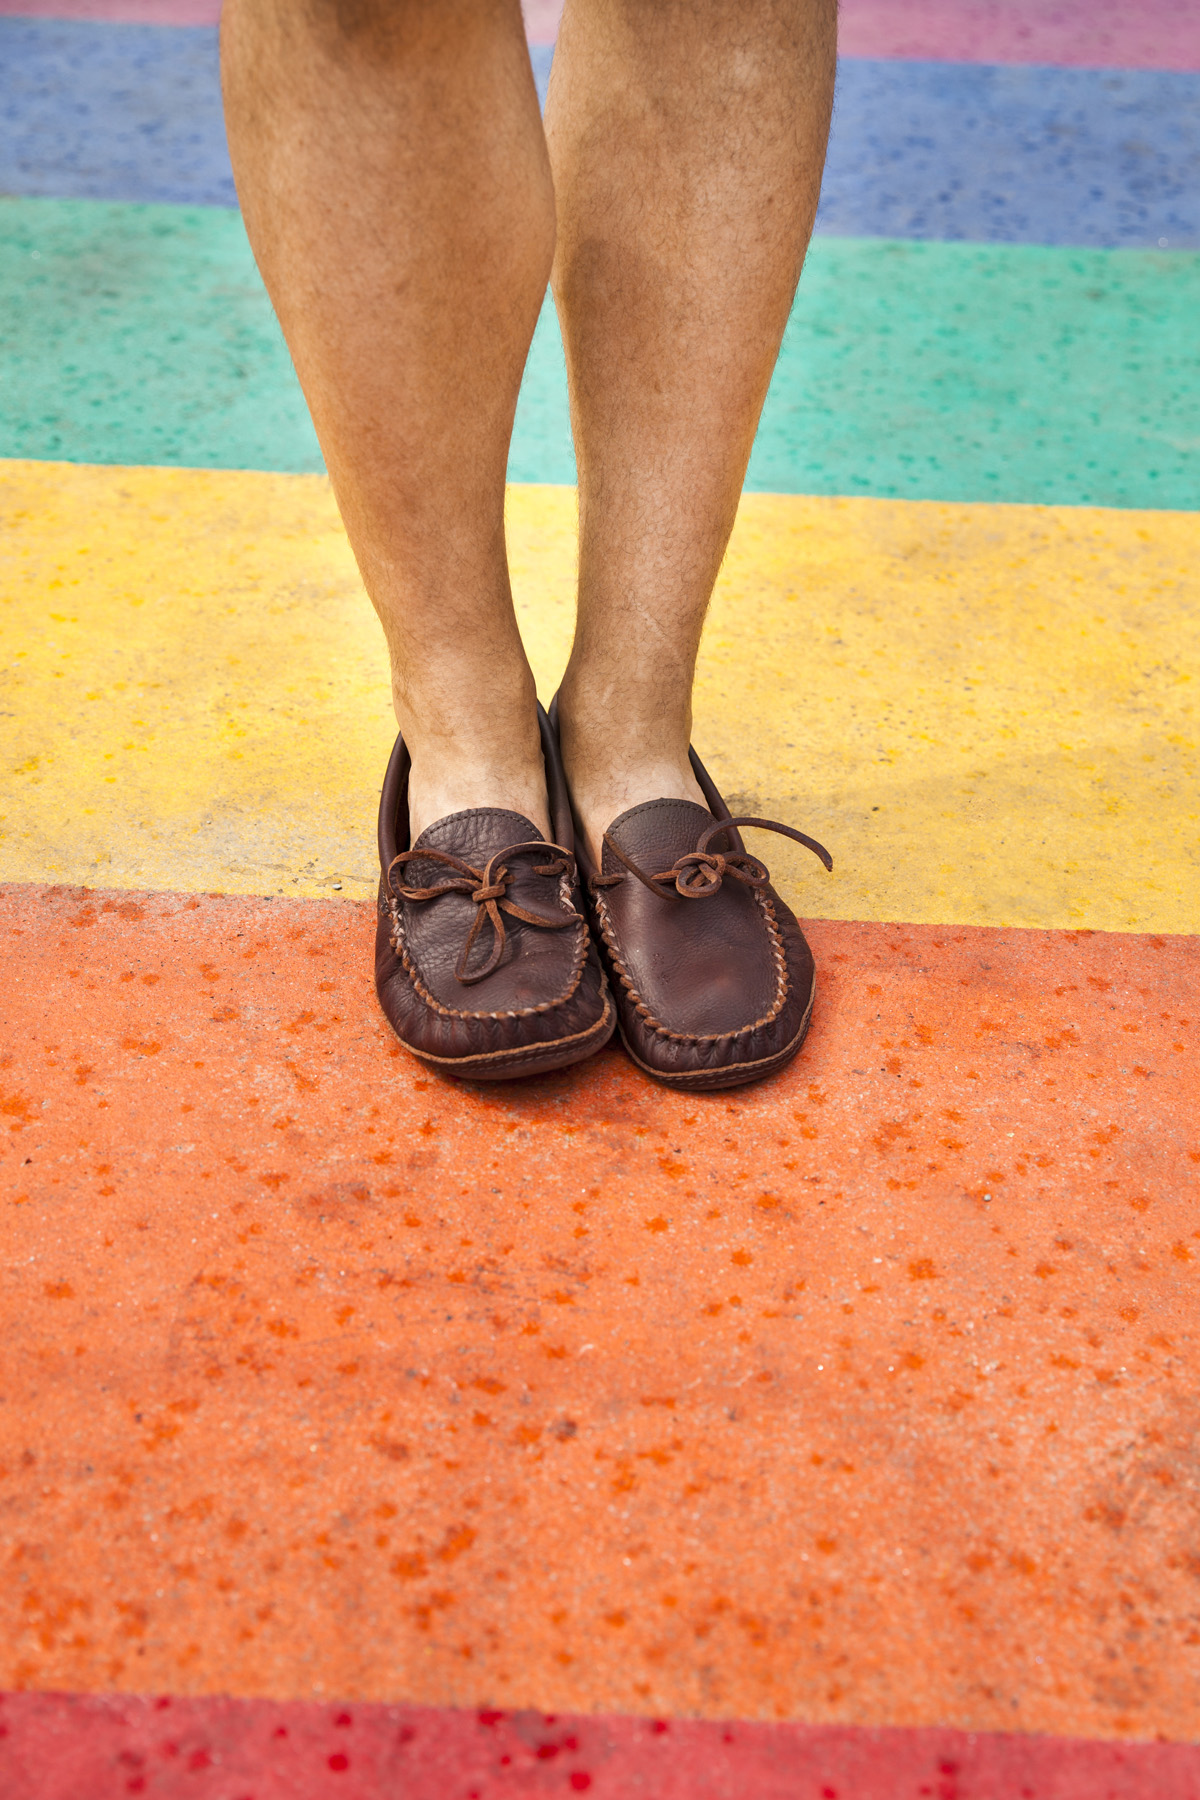 Standing in my Mocs on the Rainbow crosswalk in the heart of the Church and Wellesley Village.